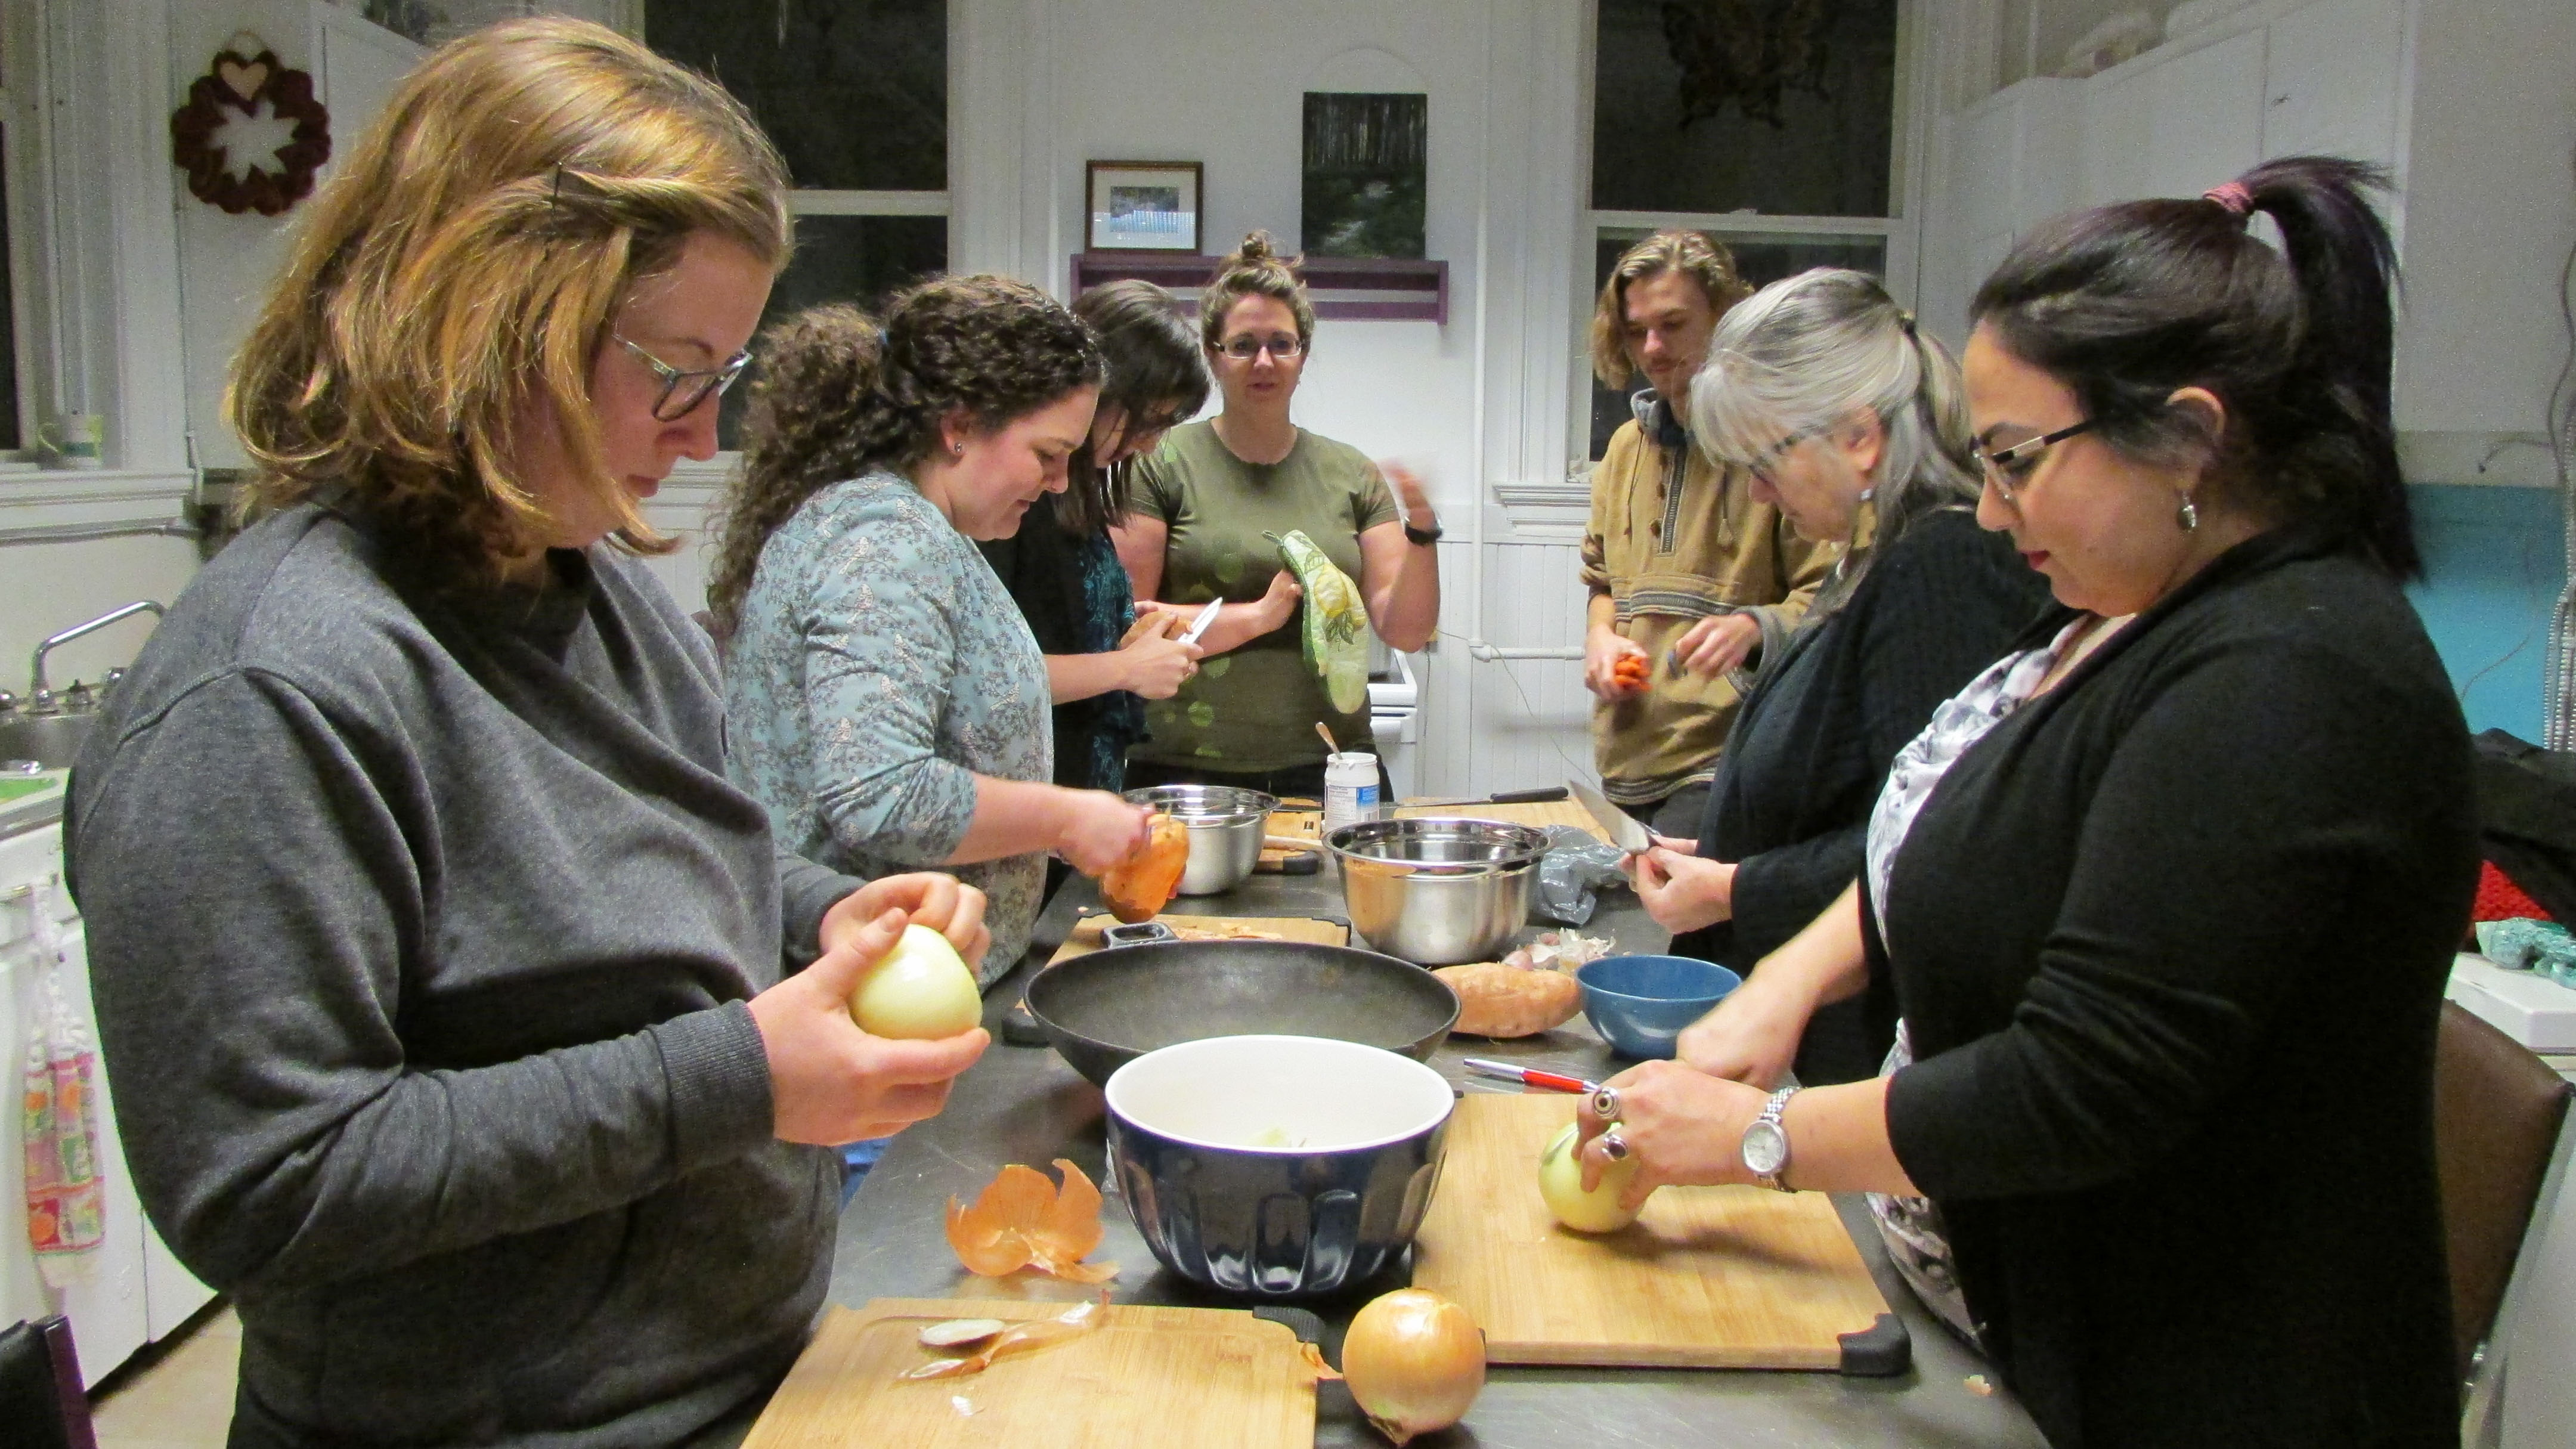 Everyone gathered around a tiny table and began preparing Massaman curry at a Halifax Trade School workshop.